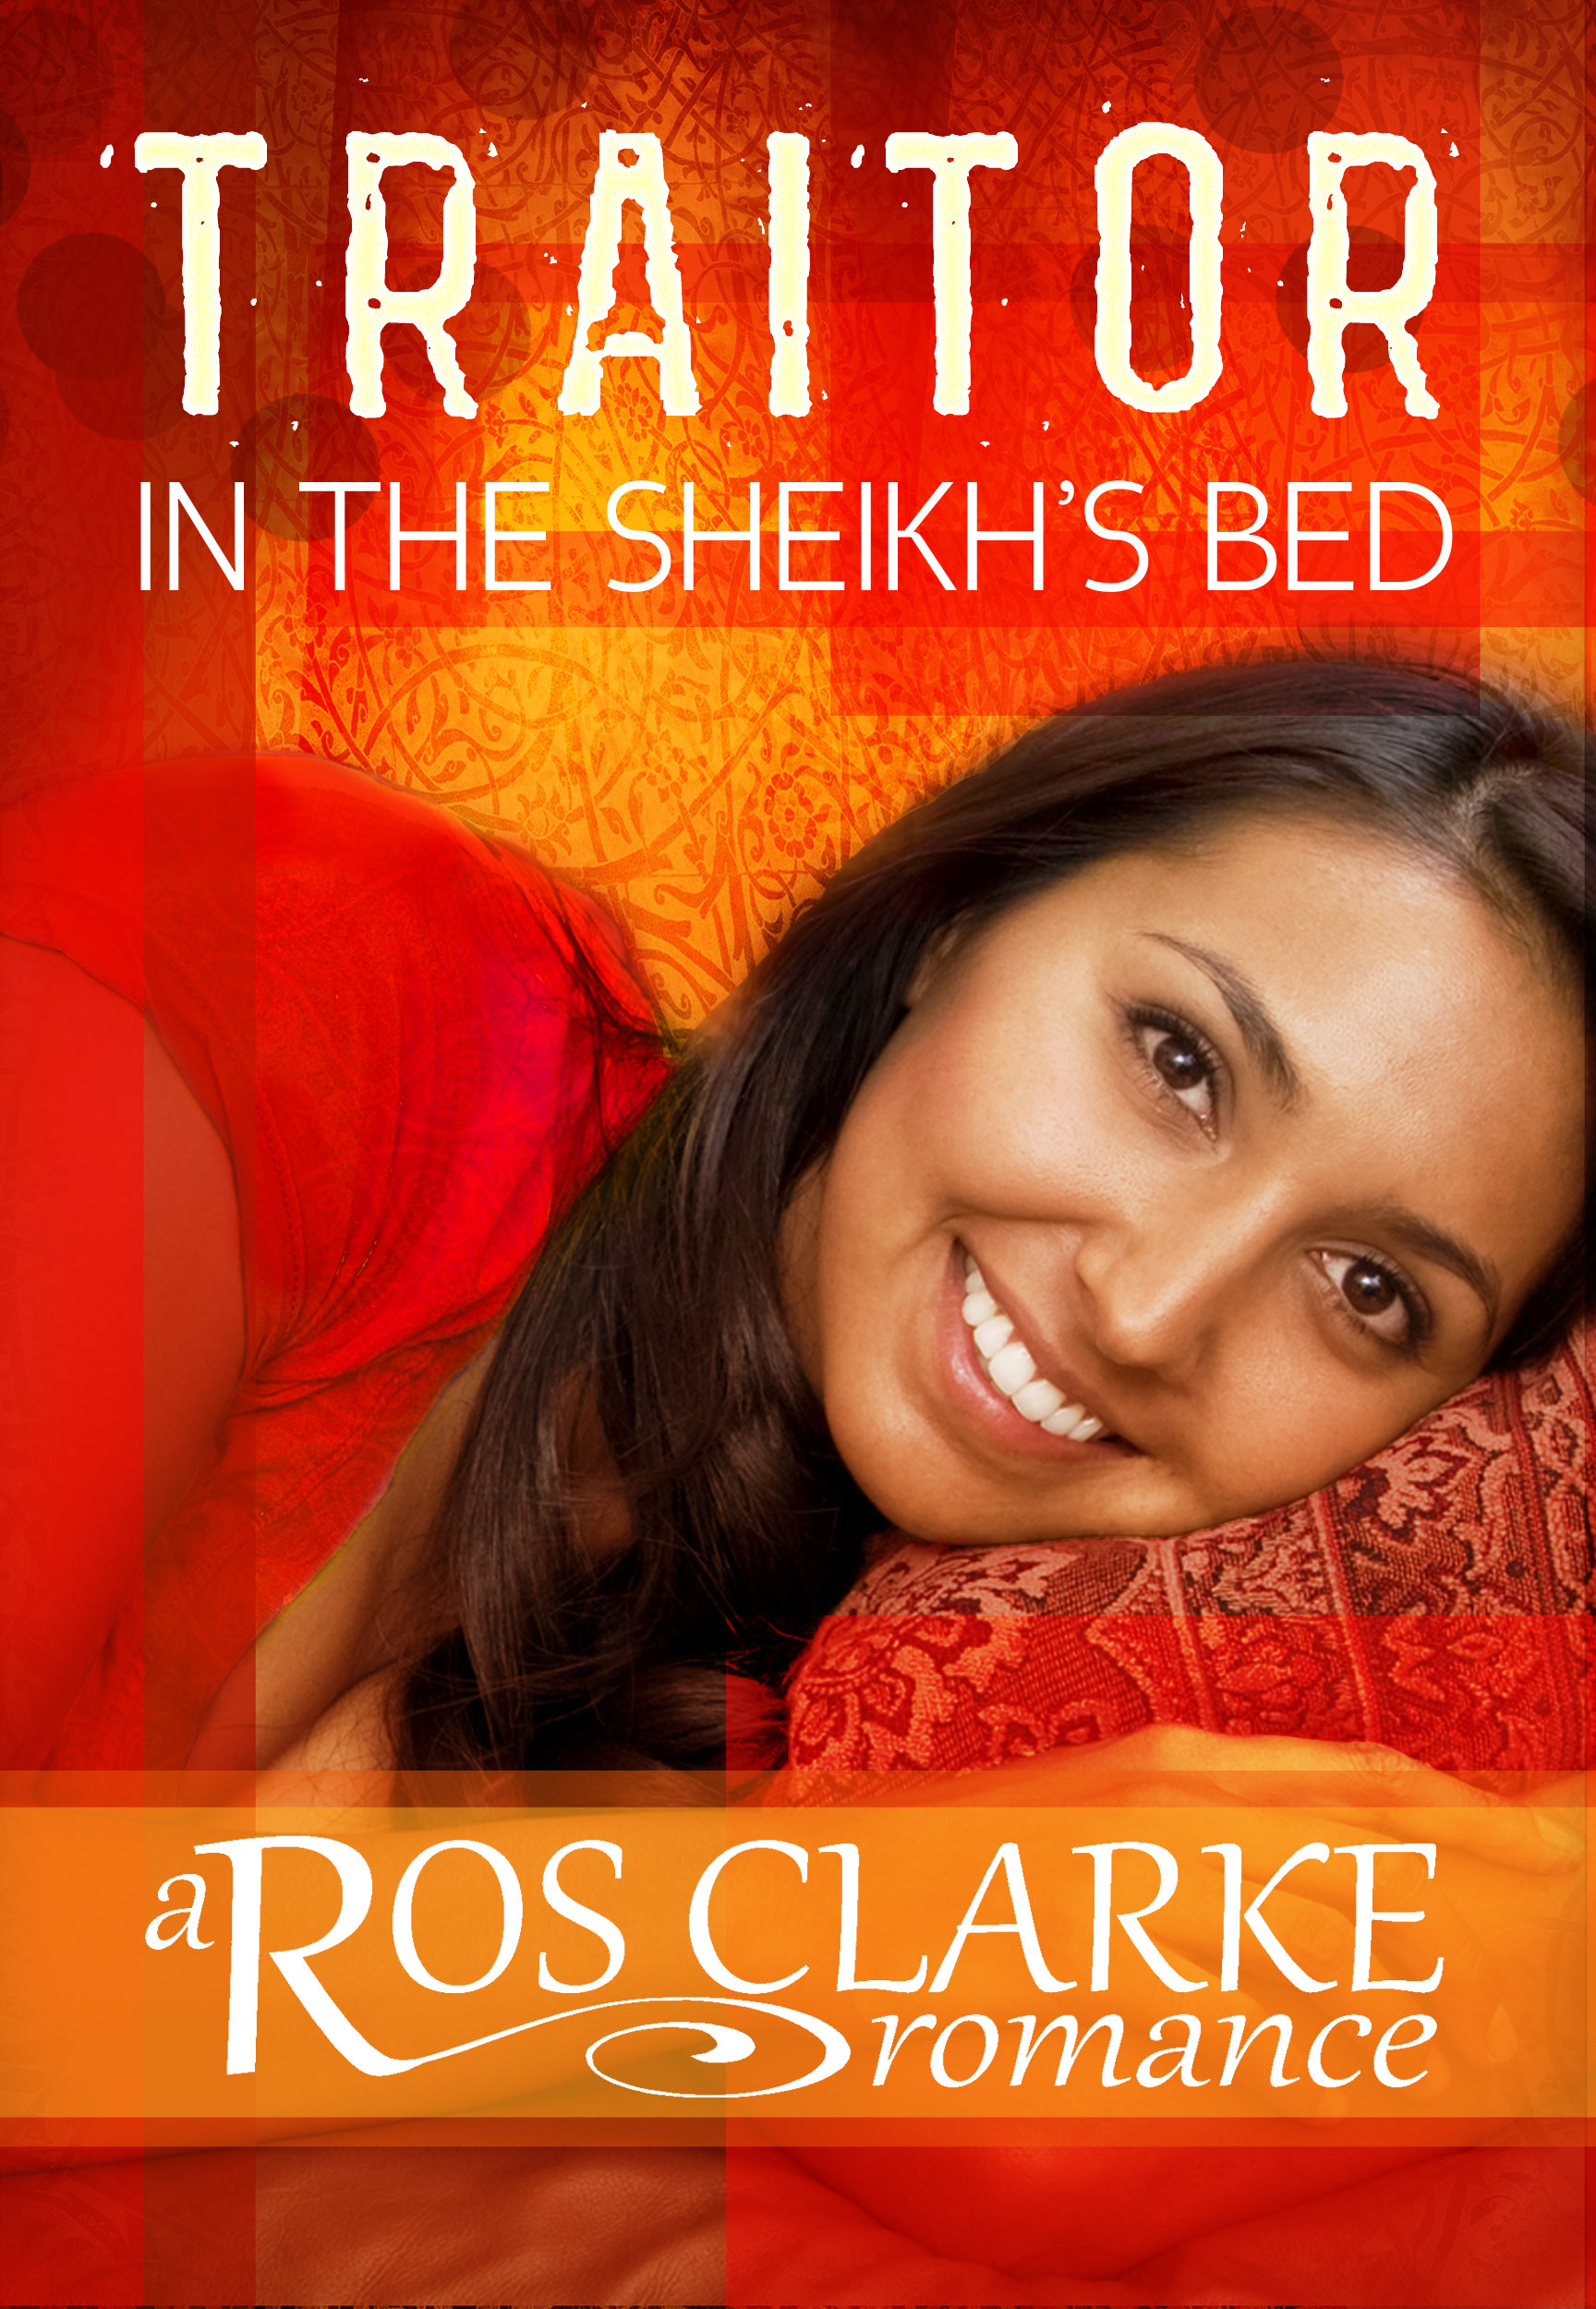 IN THE SHEIKH MARRIAGE BED EPUB DOWNLOAD